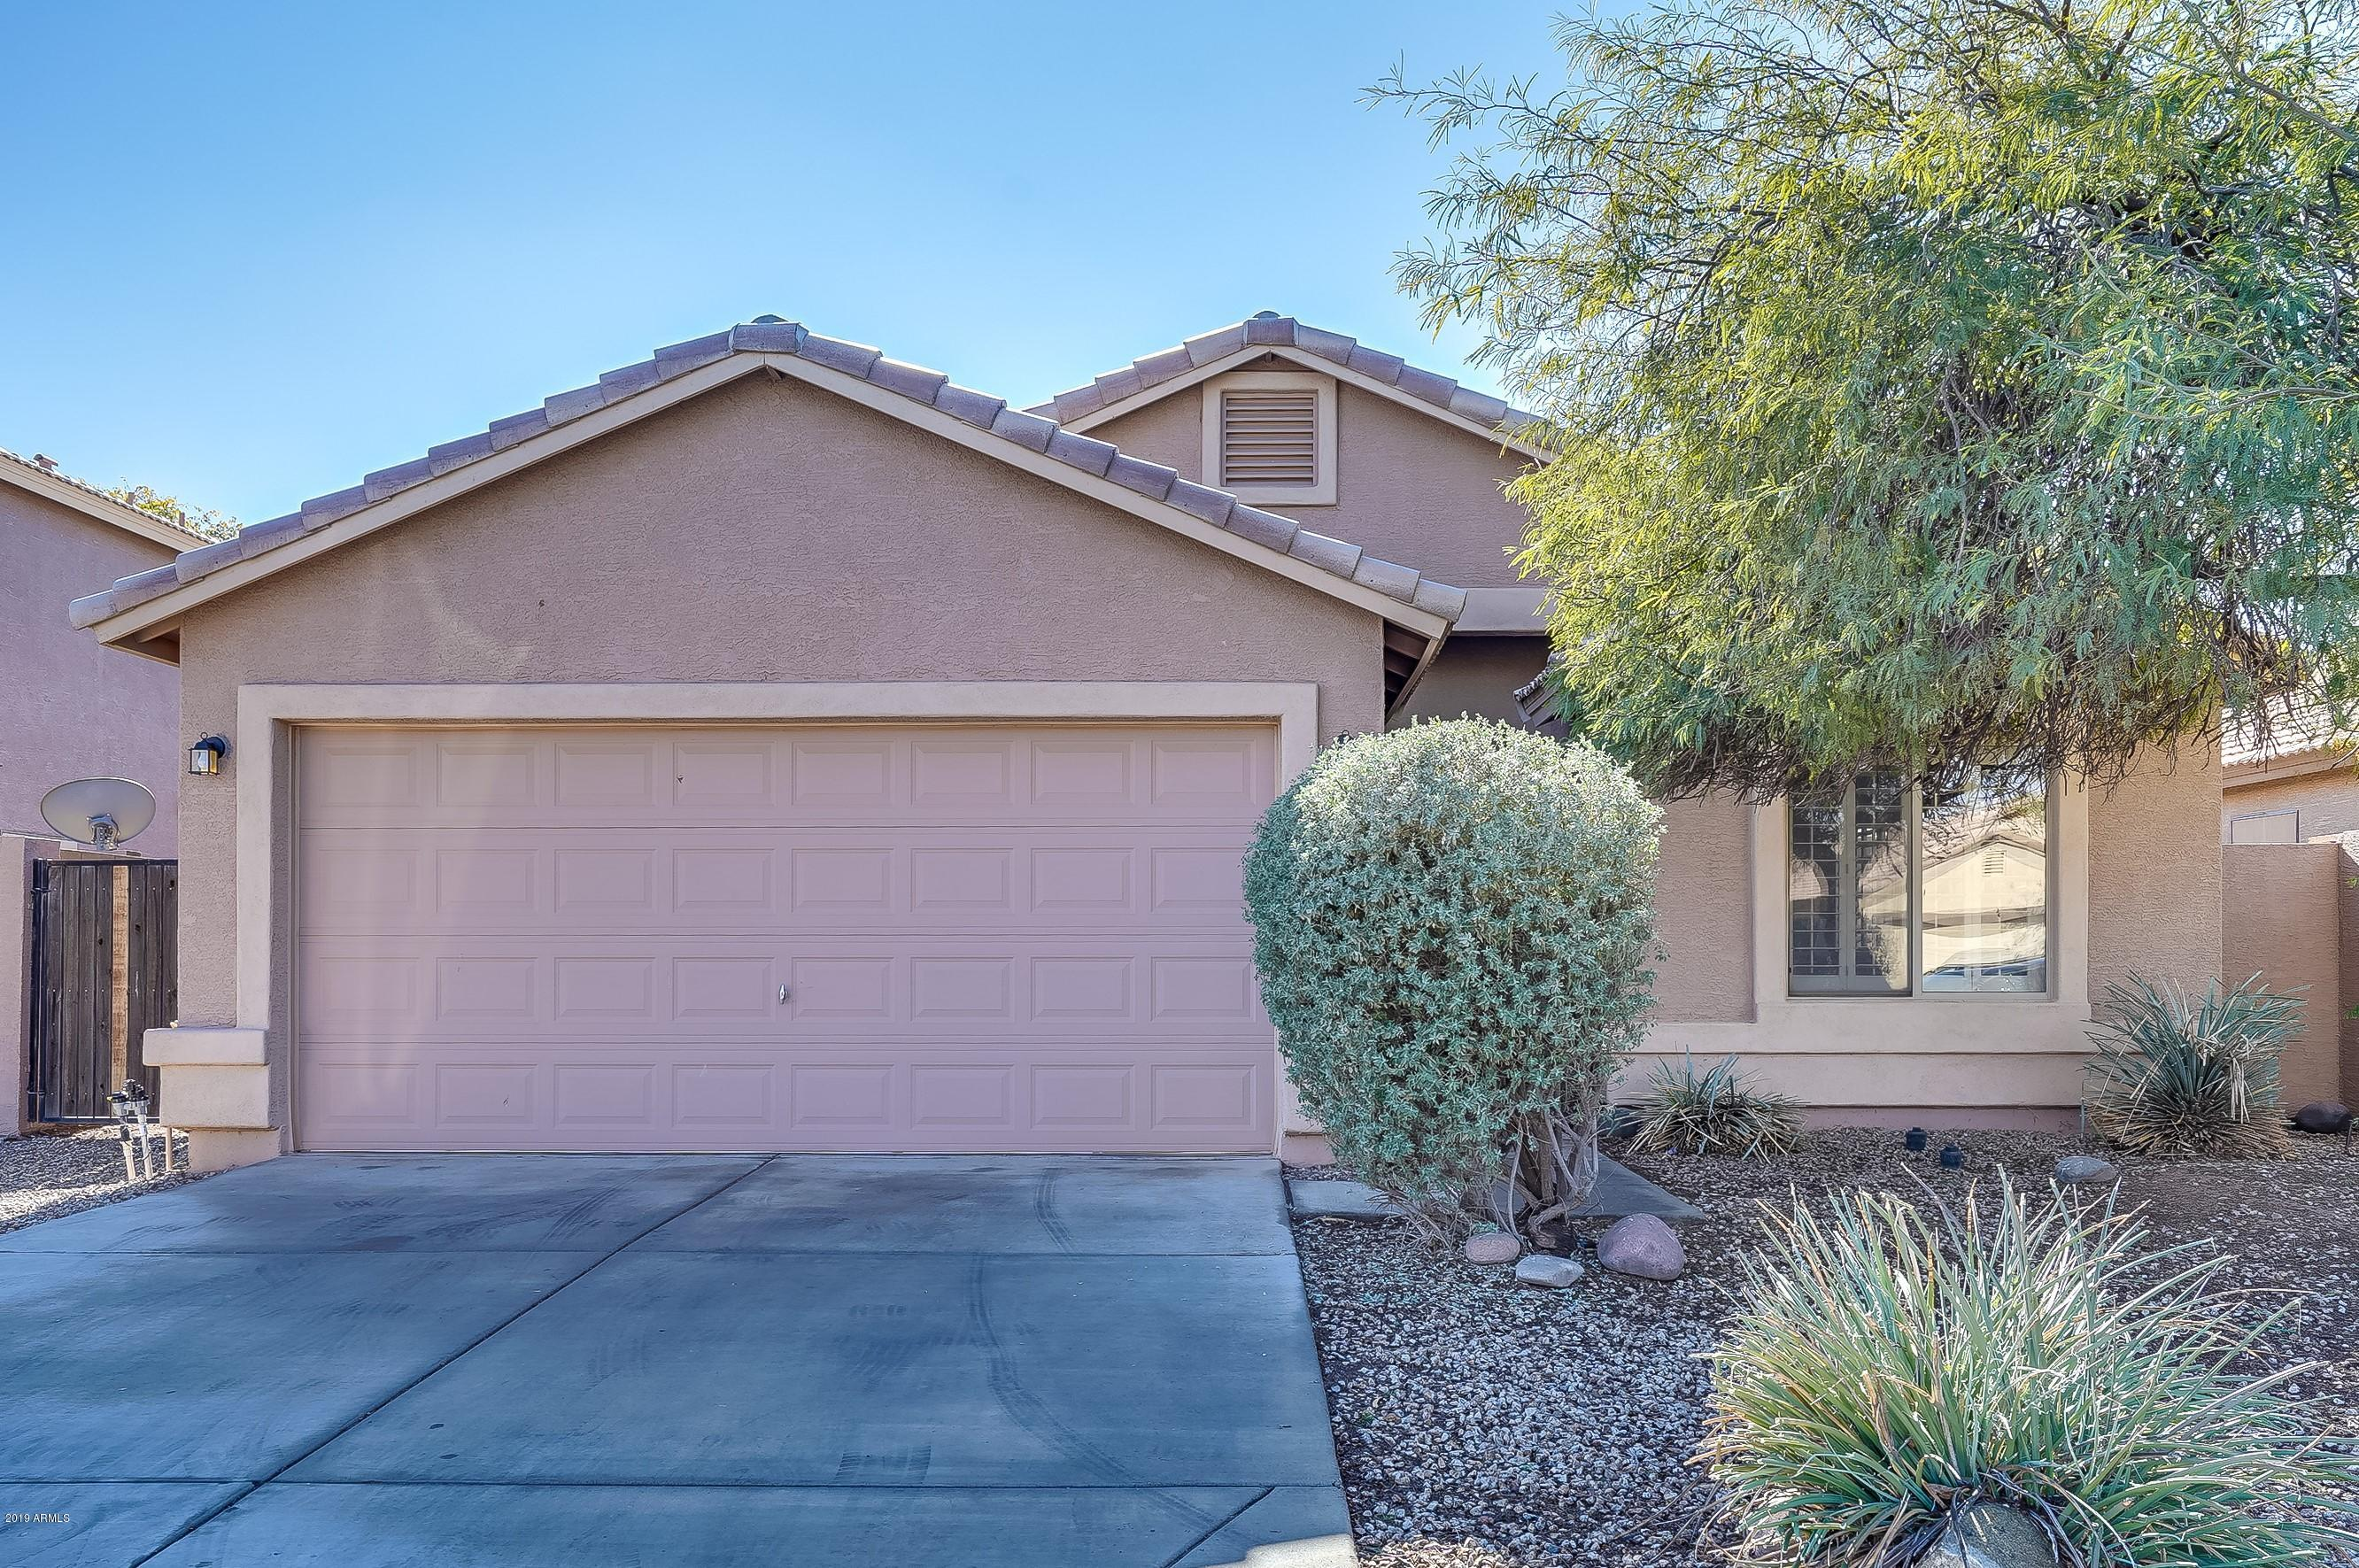 Photo for 1543 E 10th Street, Casa Grande, AZ 85122 (MLS # 5864637)